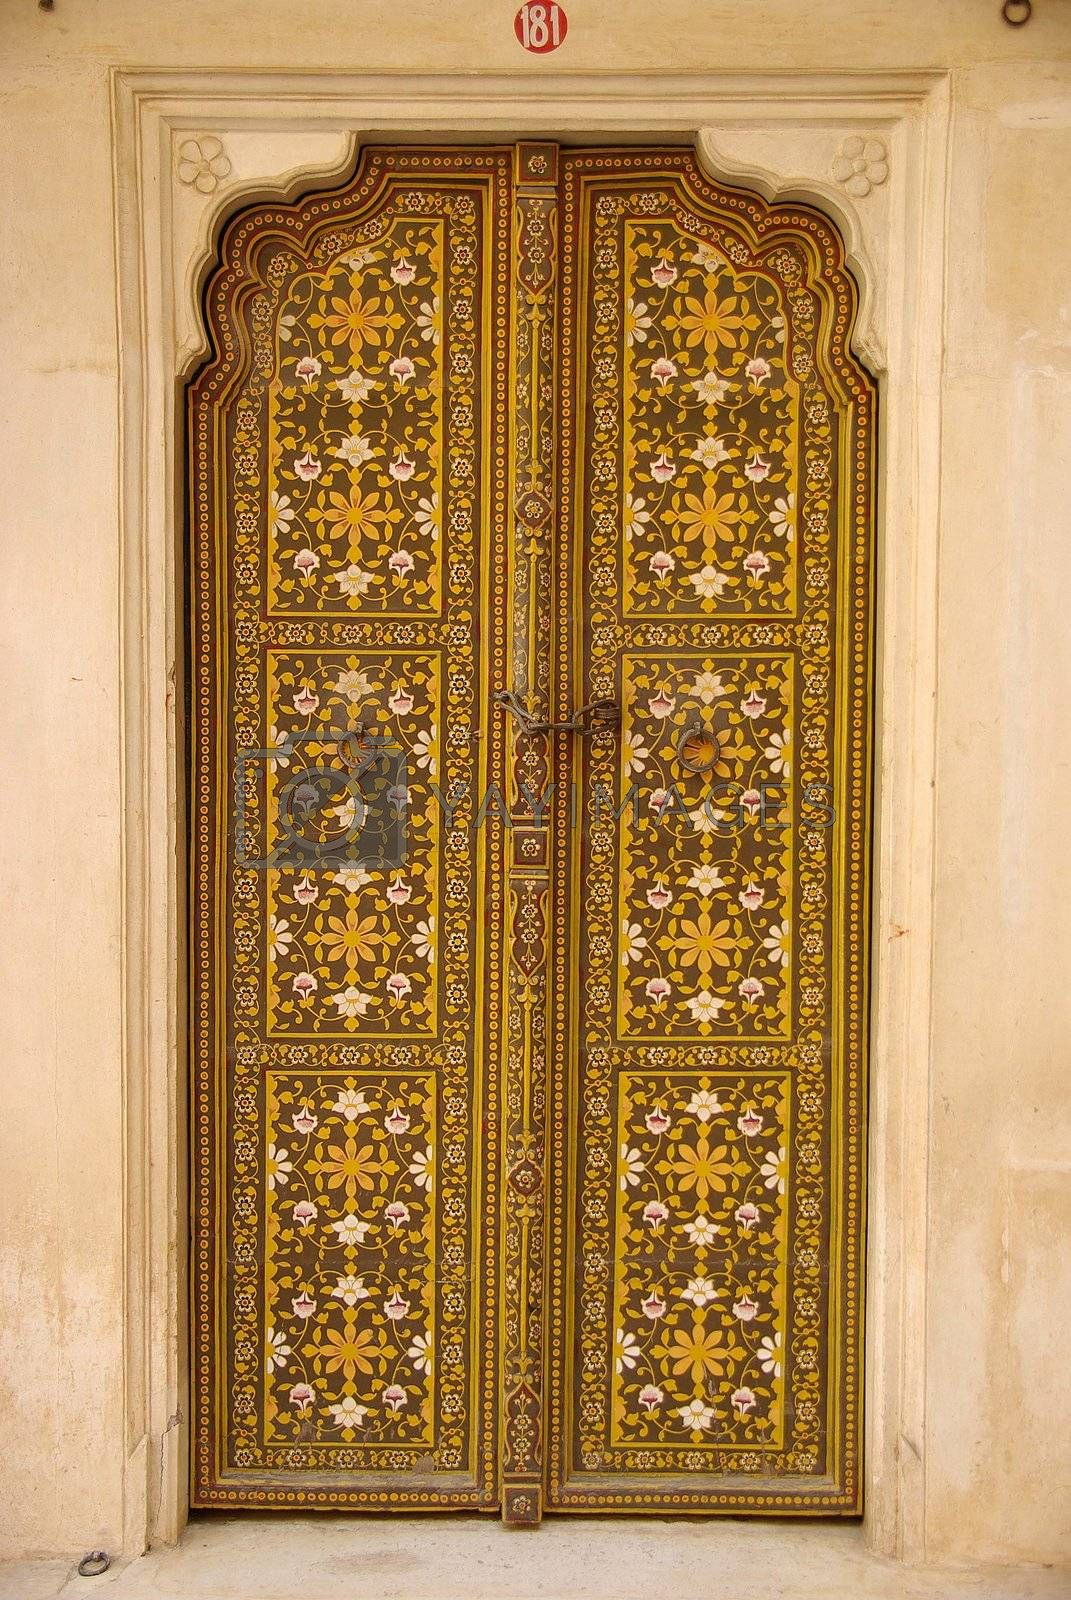 Door in Bikaner fort, Rajasthan by pascalou95